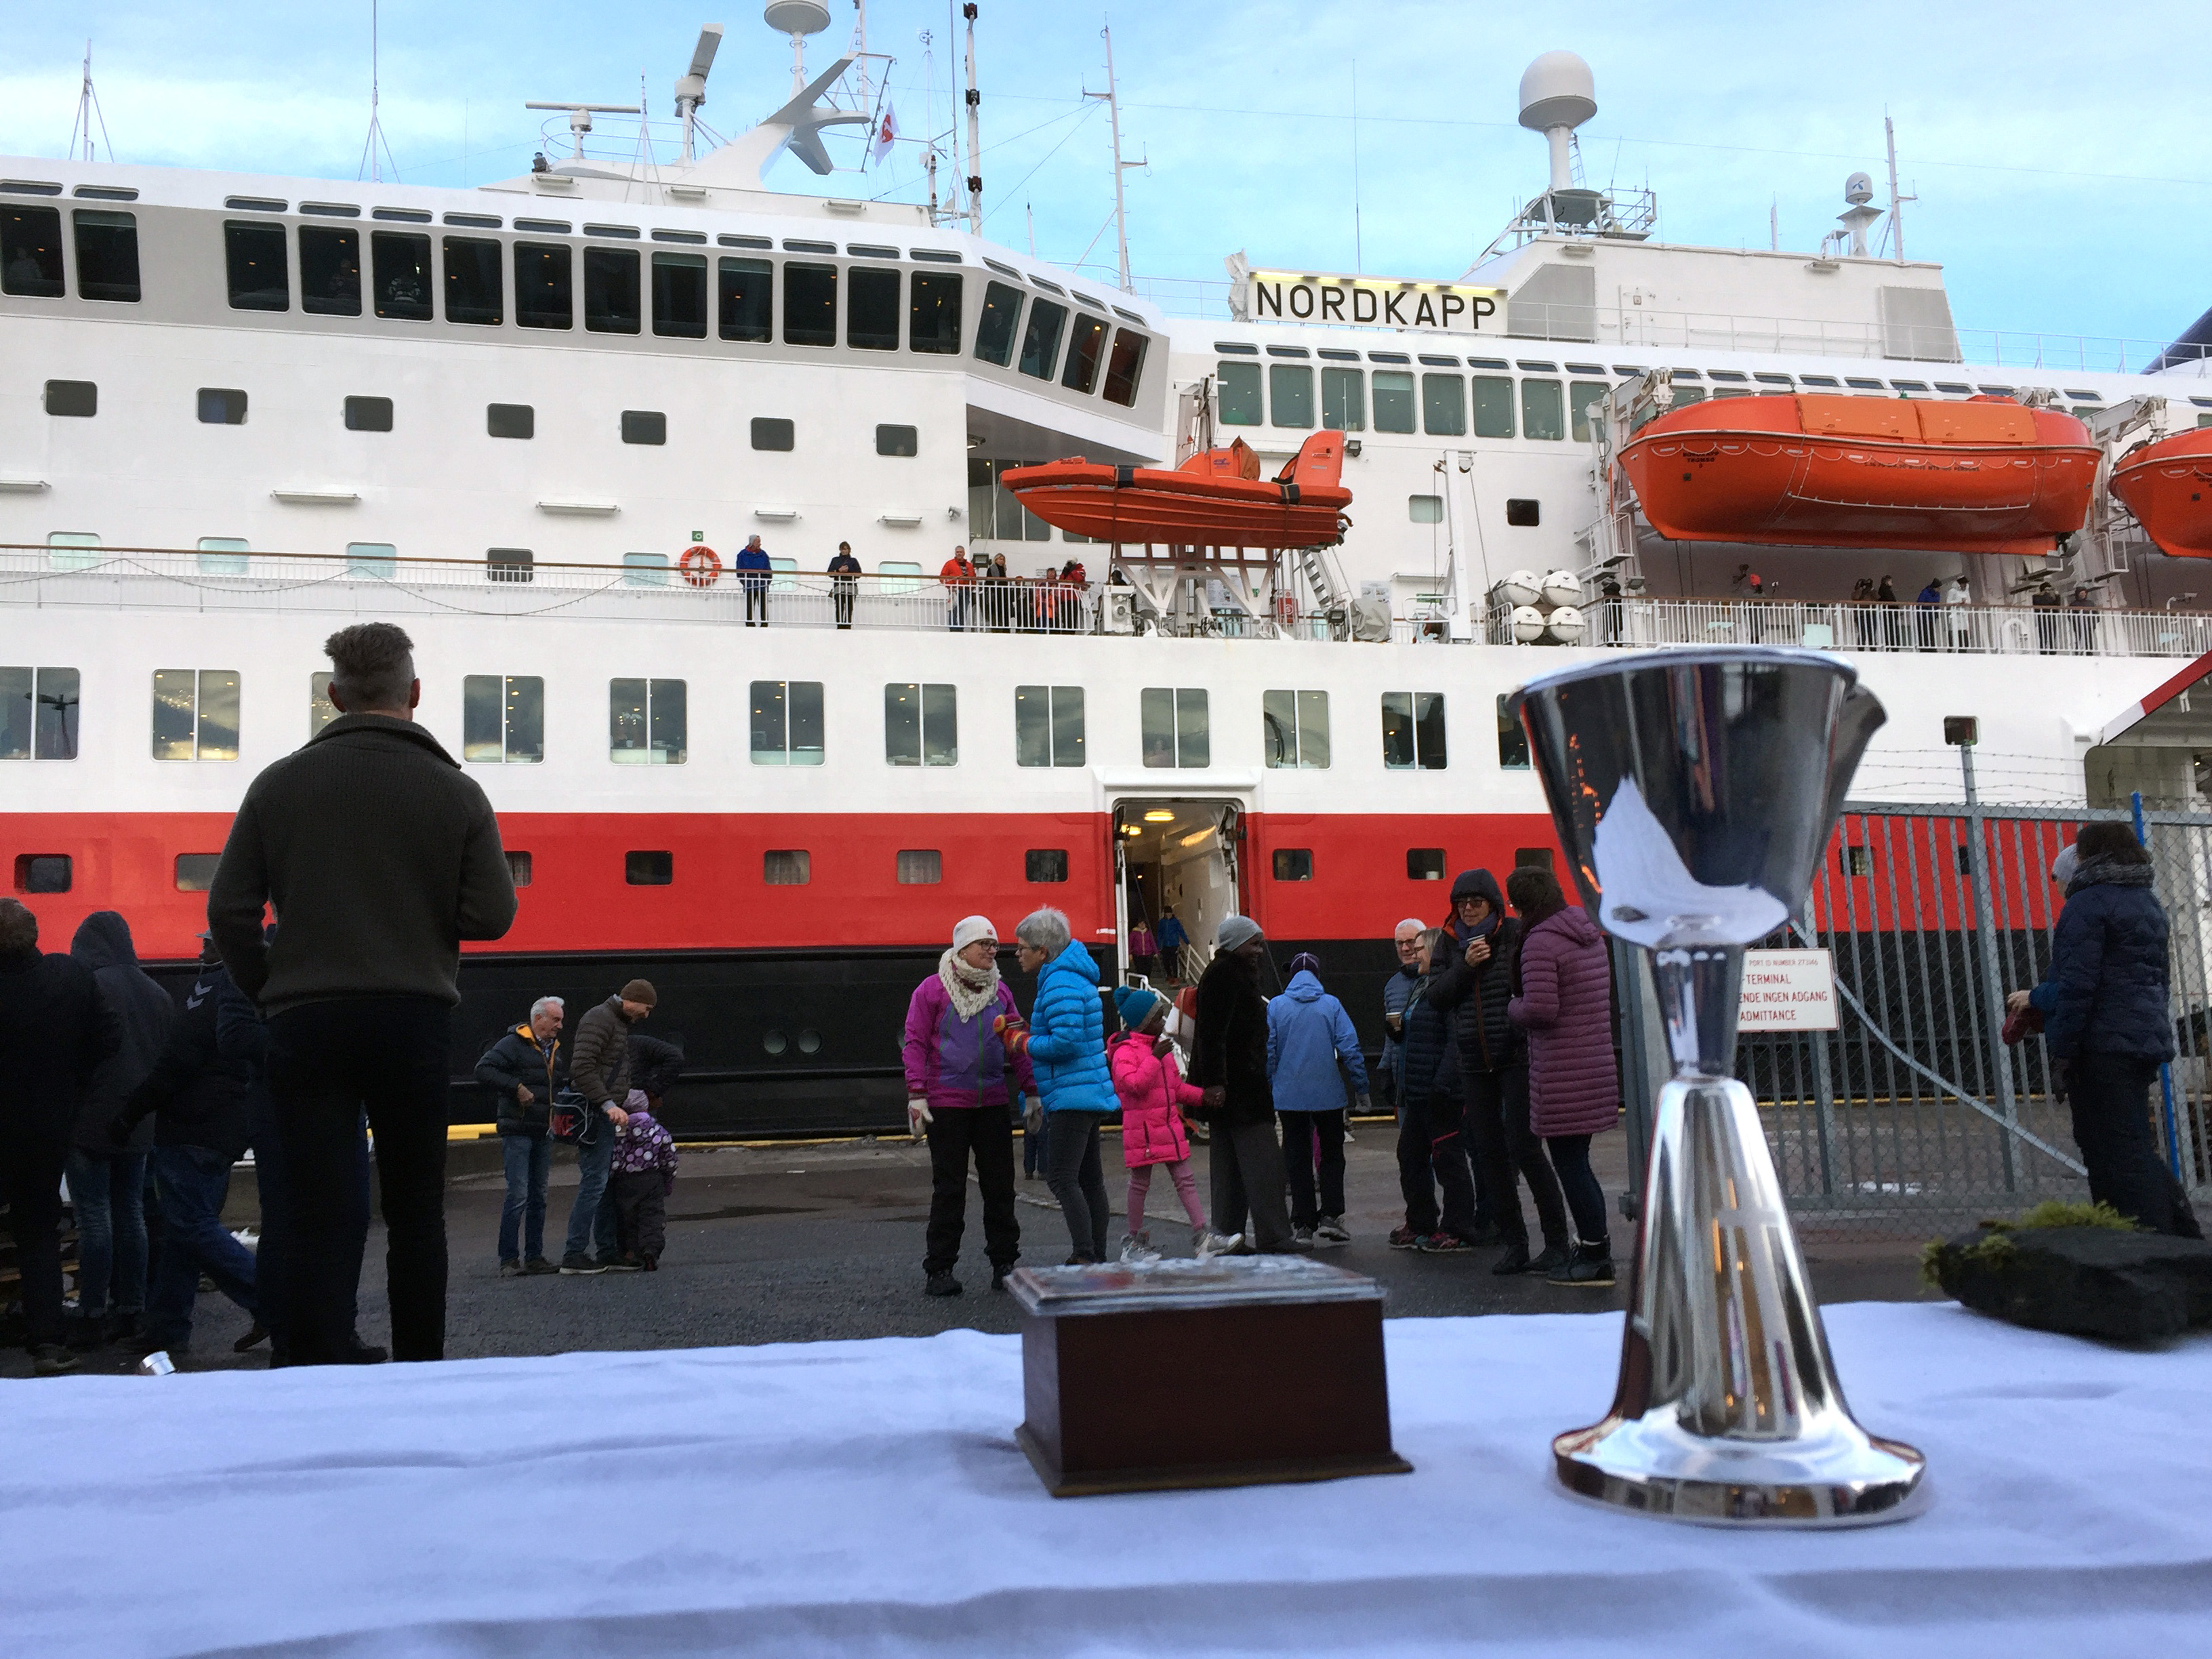 Communion is prepared to be shared with church members and ferry passengers. Photo by Lise Løvland.